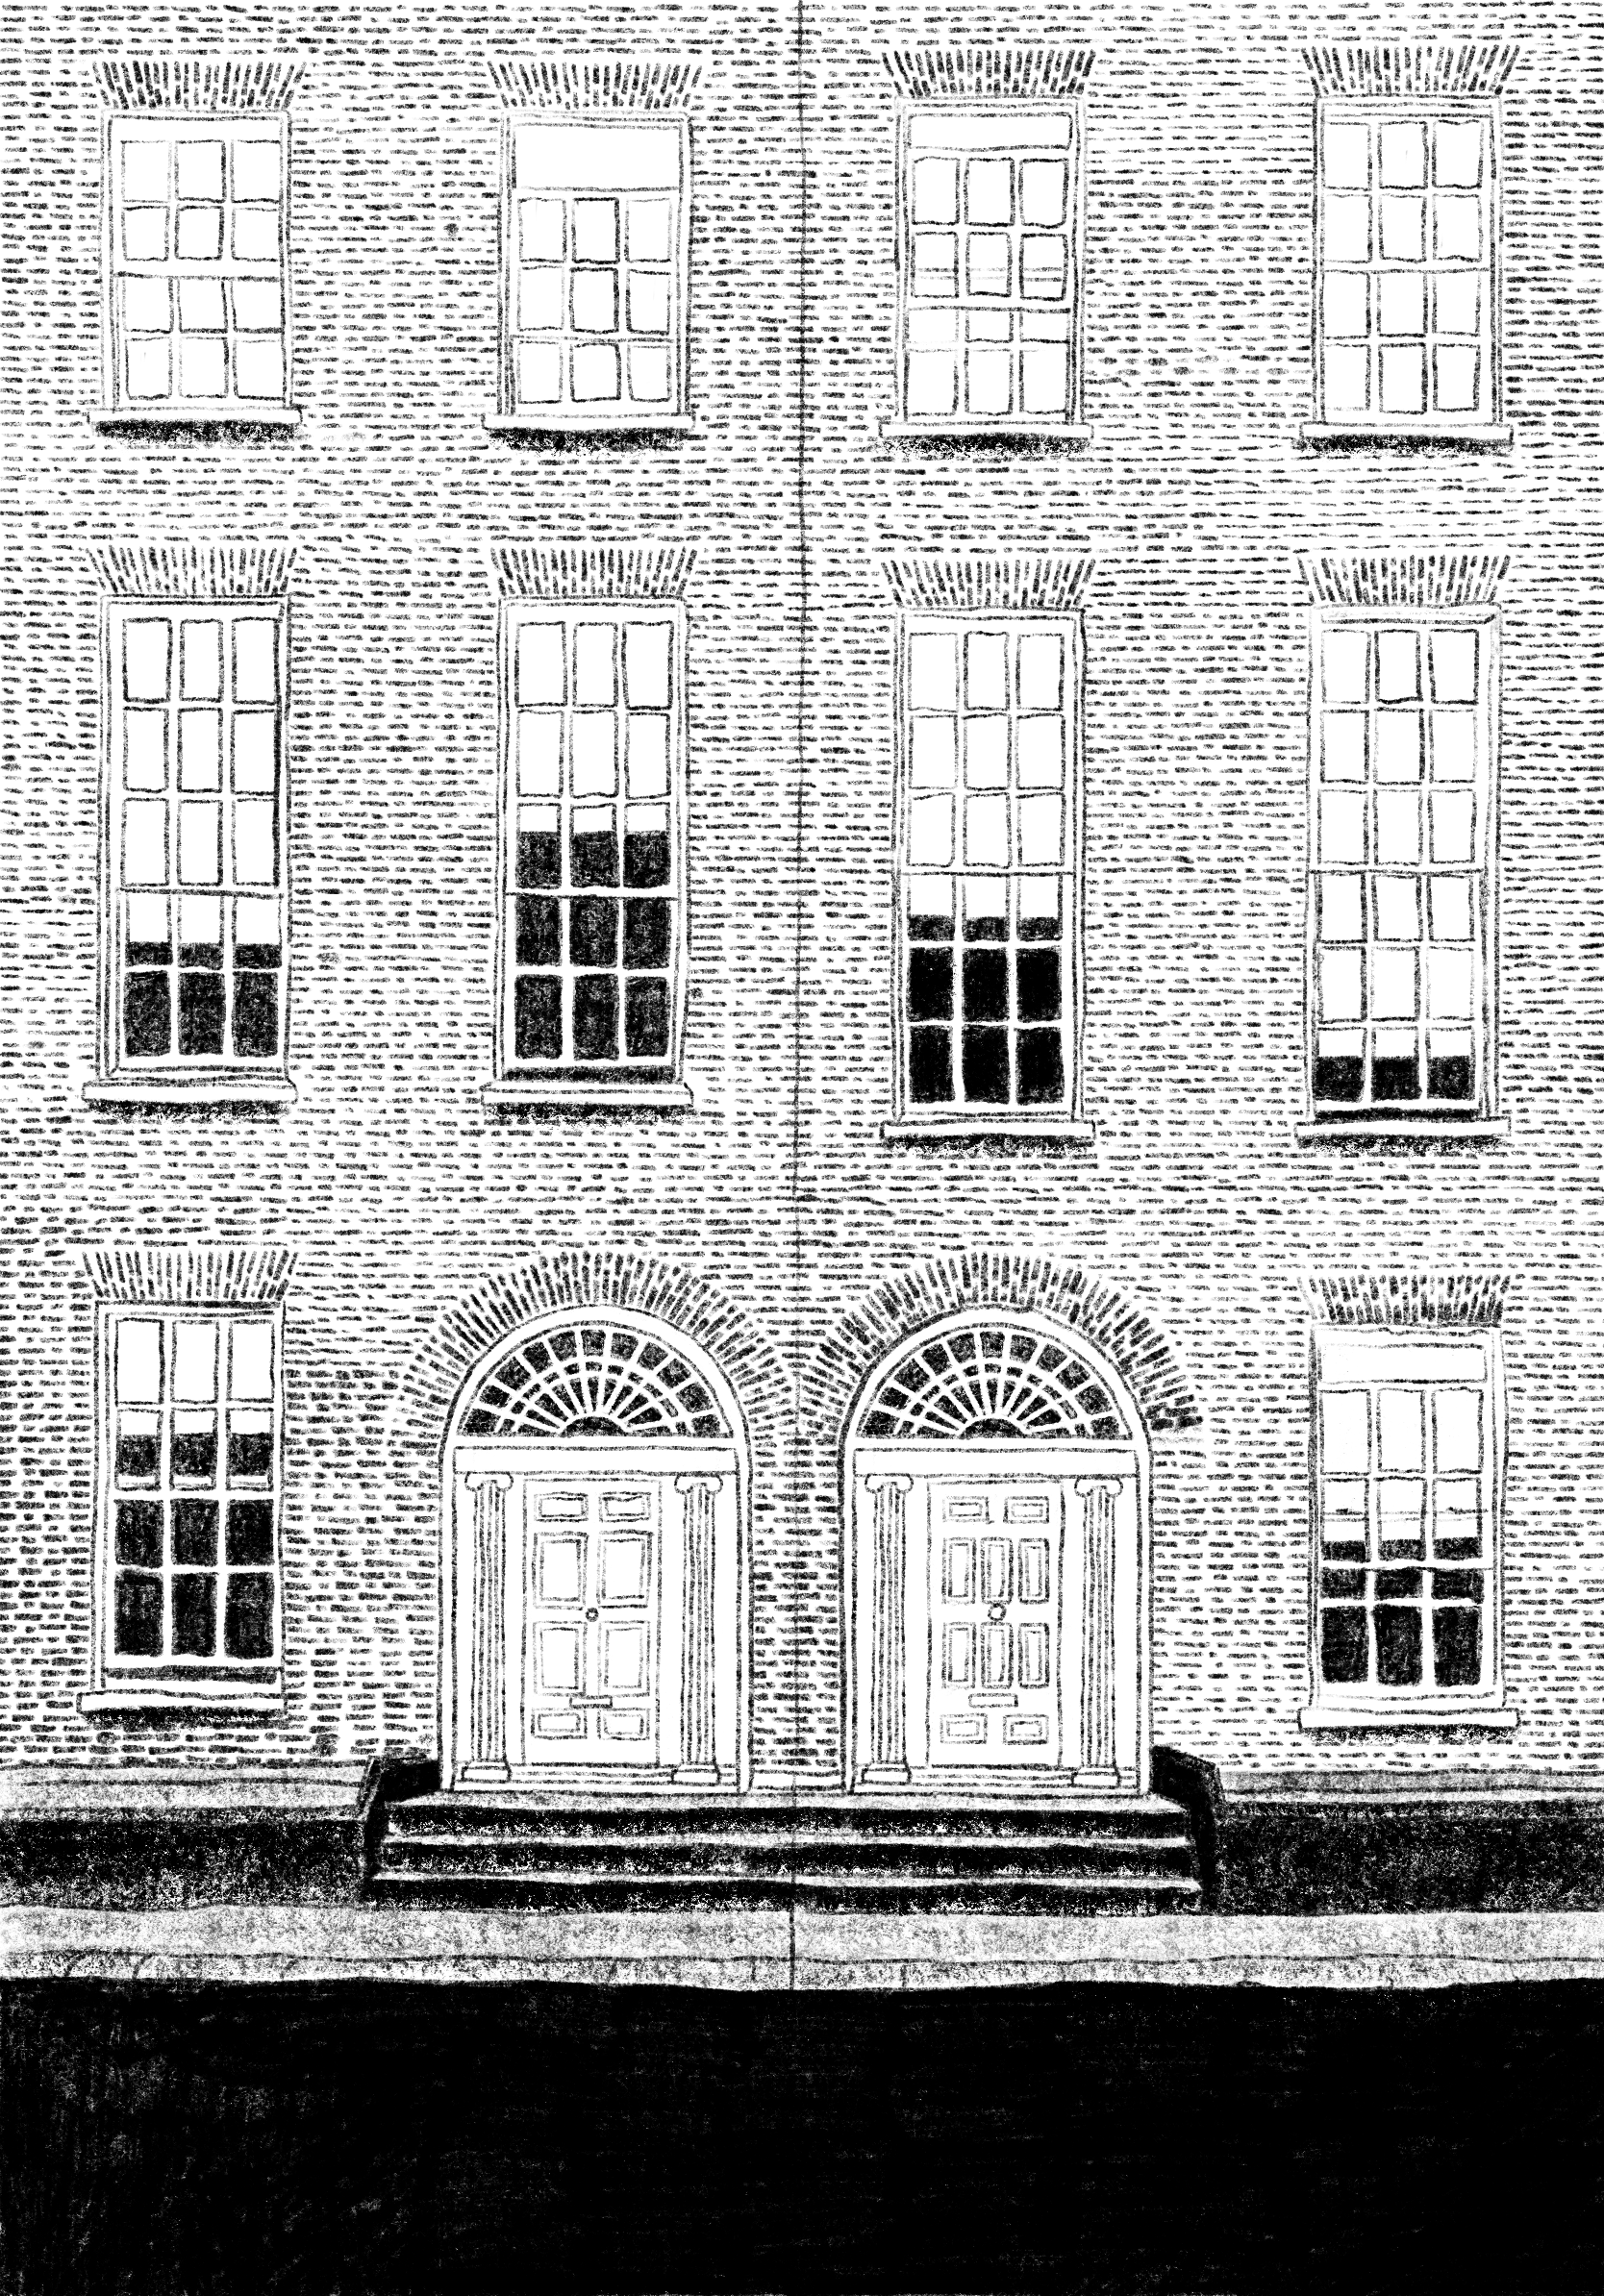 A black and white pencil drawing of a 3 story brick apartment building and 2 front doors right next to each other, drawn straight-on from the street. Ornate brick work frames each of the large windows and doors, making it look european.